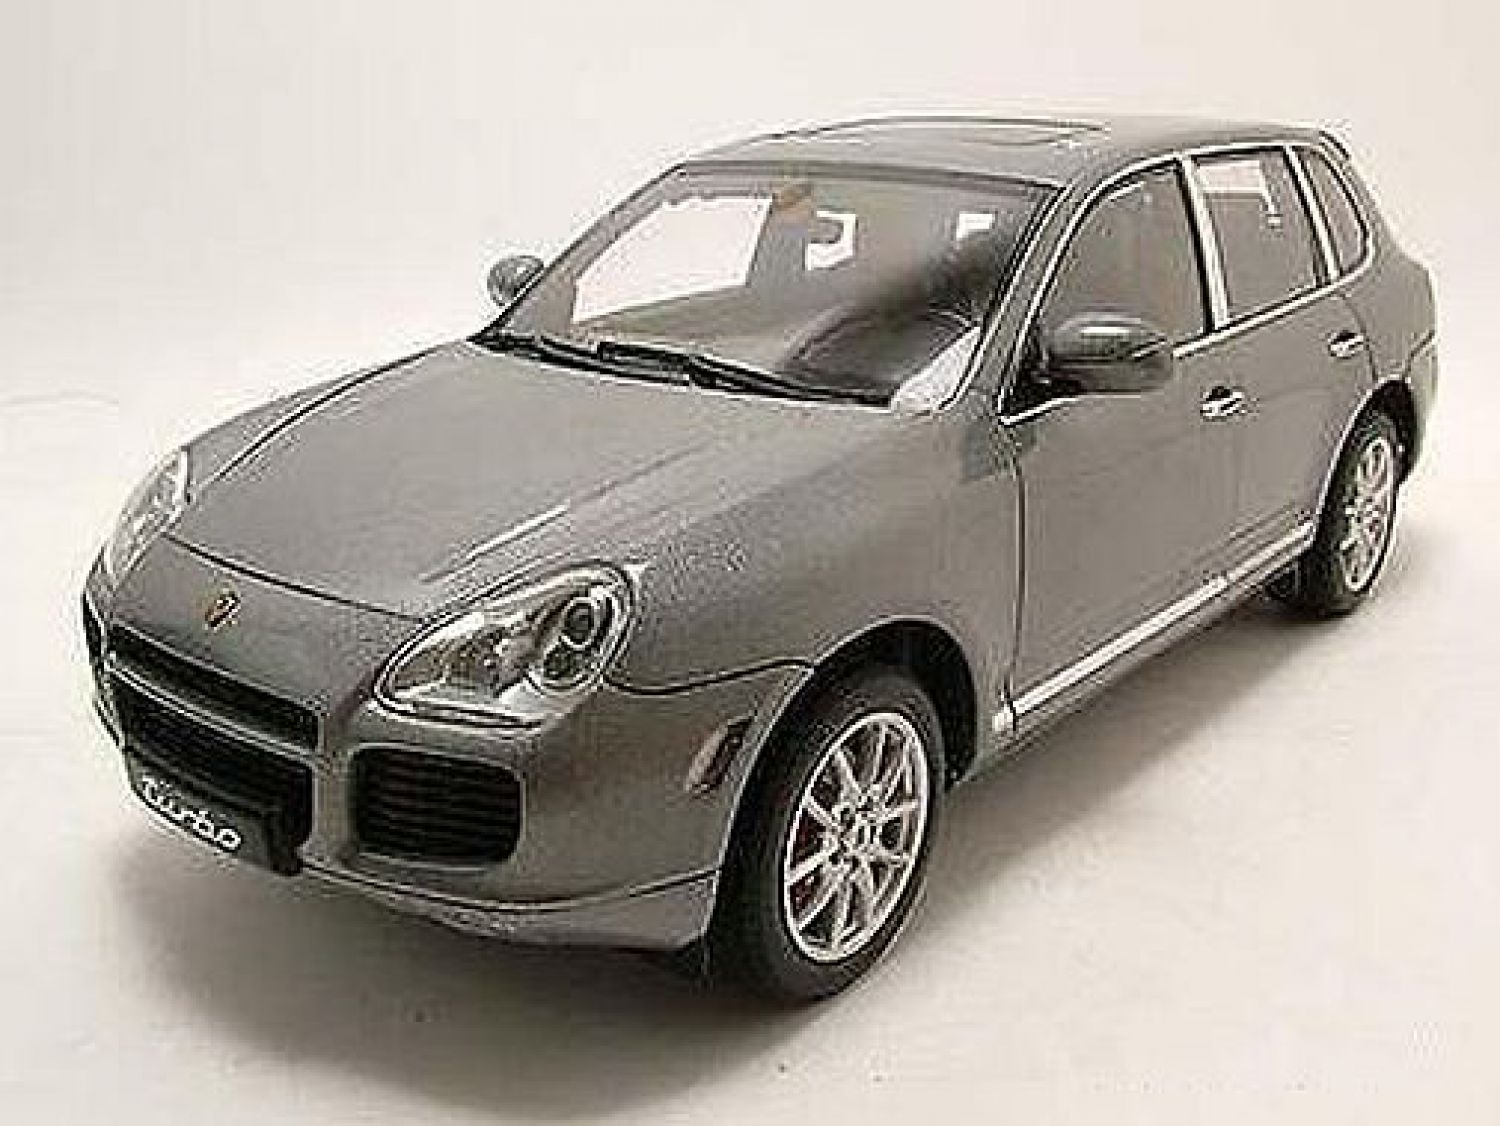 porsche cayenne turbo grau metallic modellauto 1 18. Black Bedroom Furniture Sets. Home Design Ideas